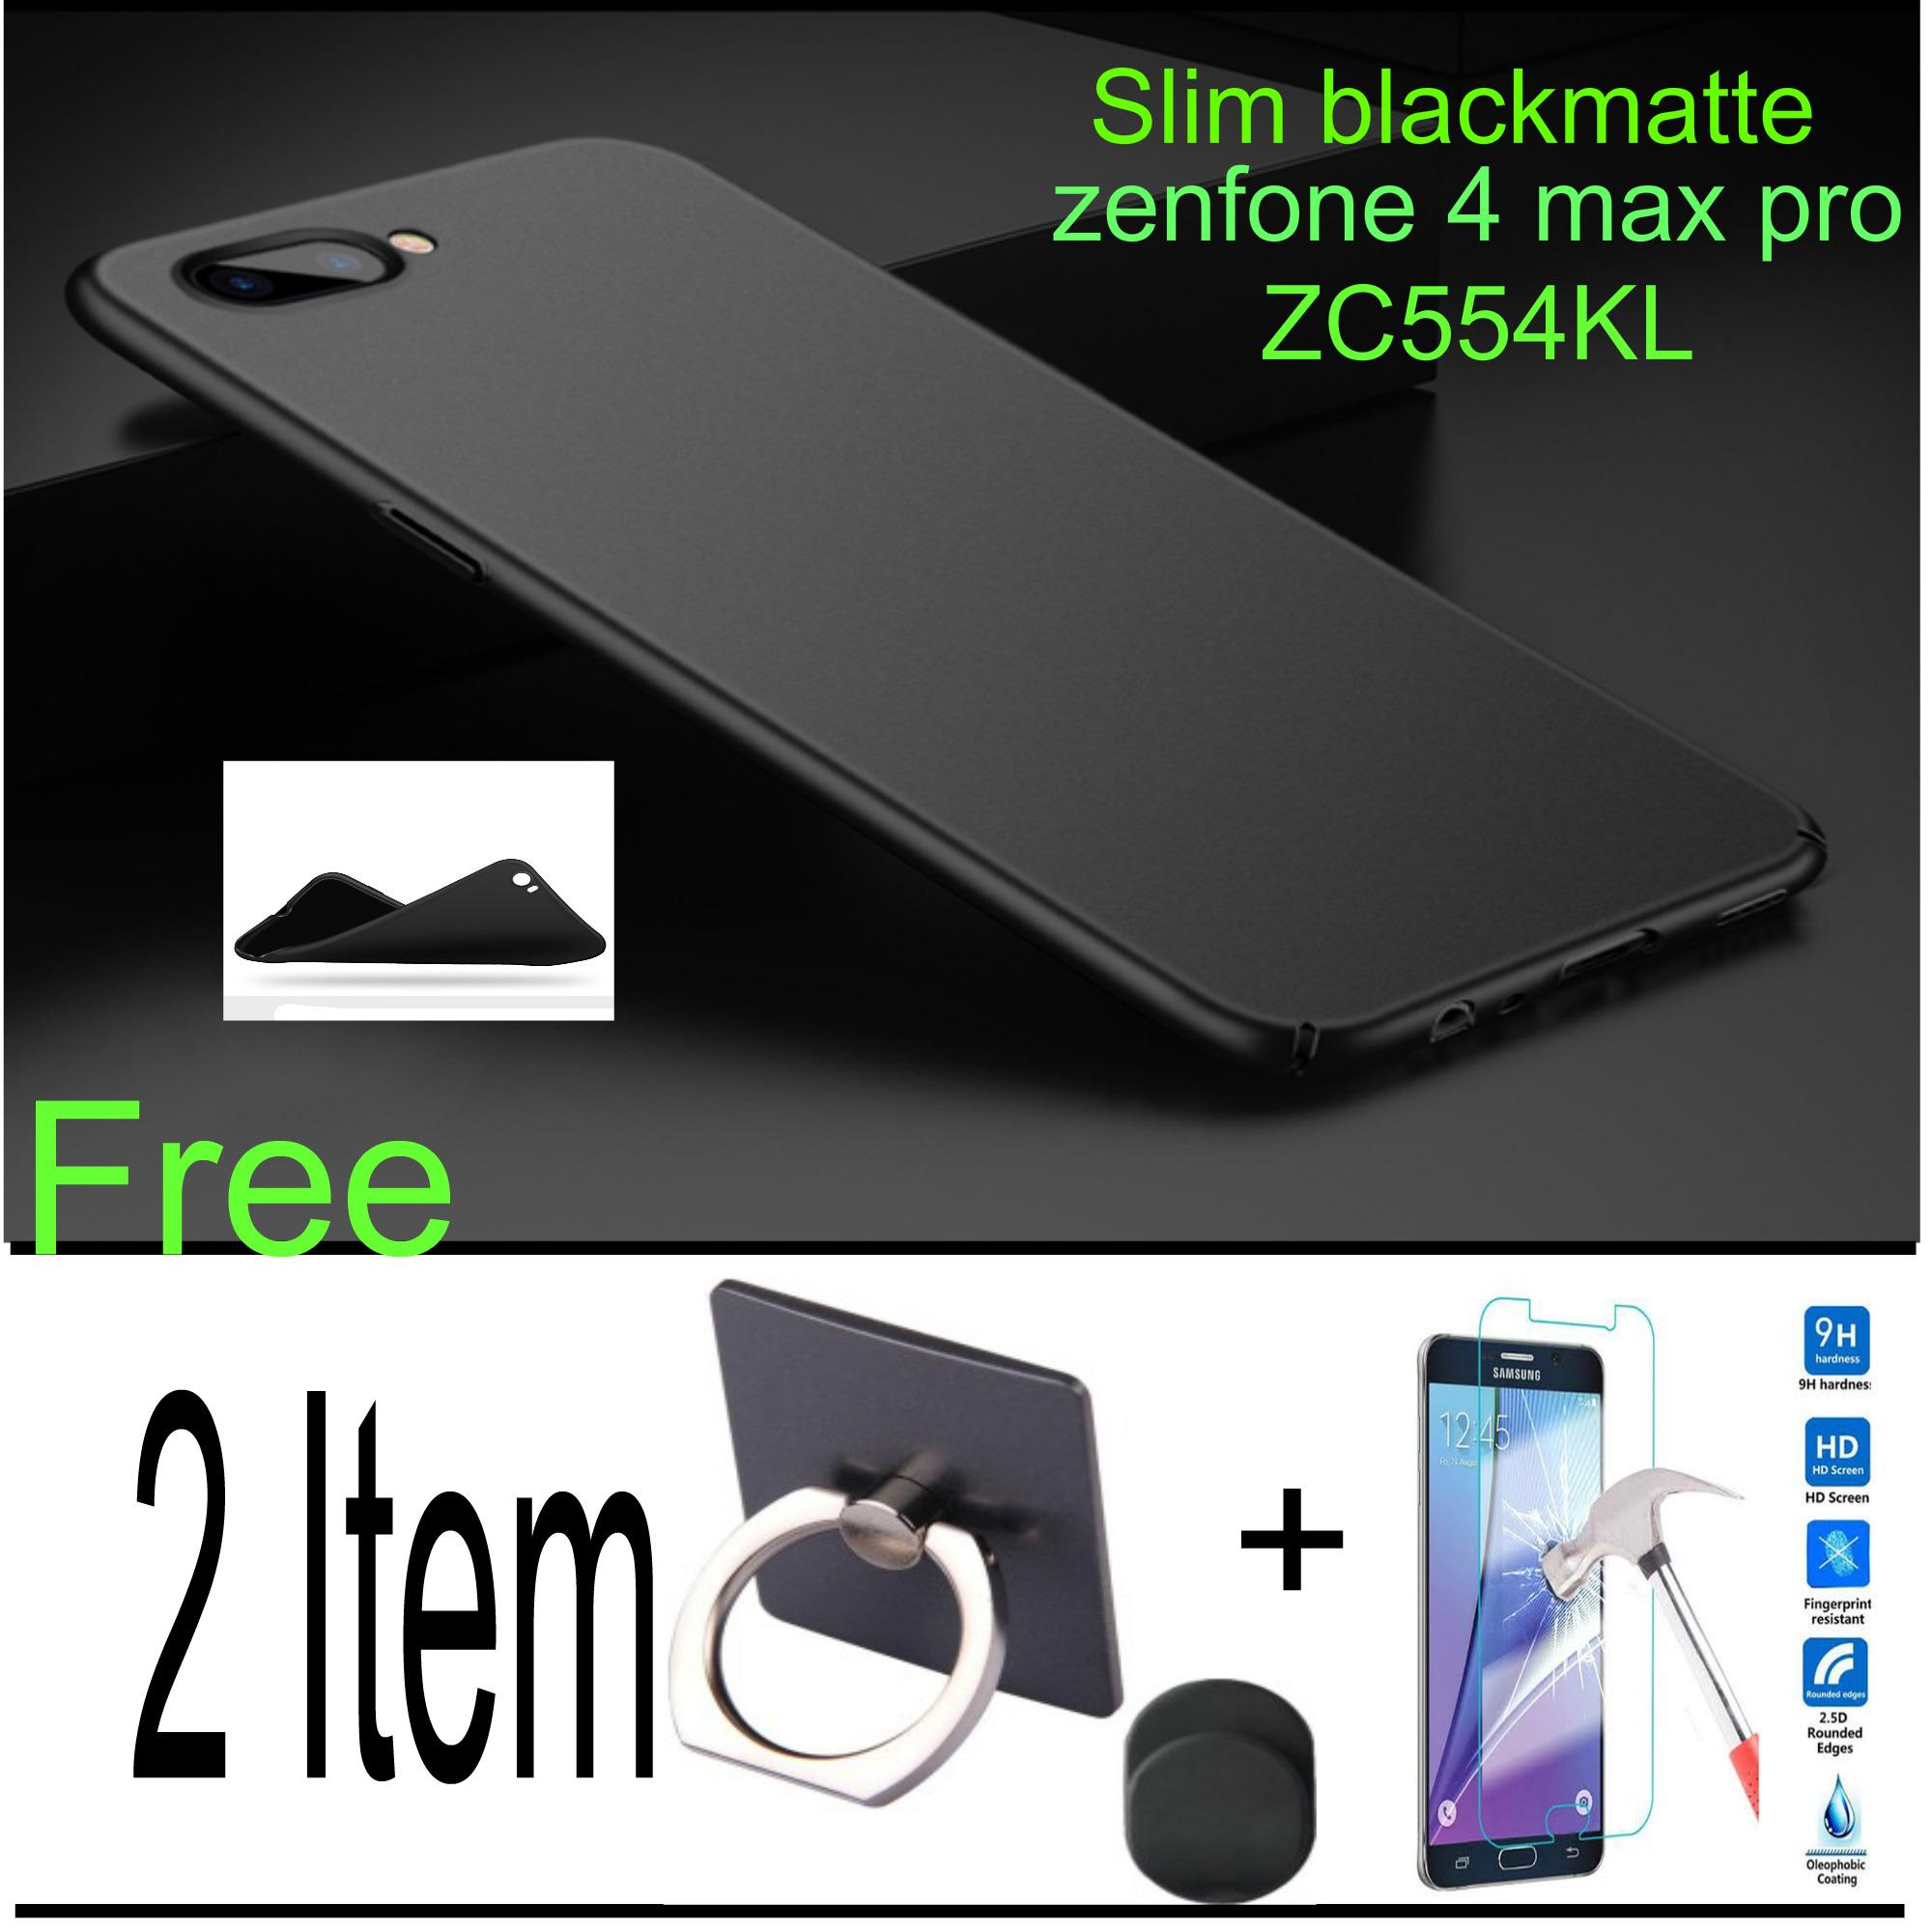 Softcase Blackmatte Case For Asus zenfone 4 max  pro ZC554KL Free Ring Universal+ Temperd Glass